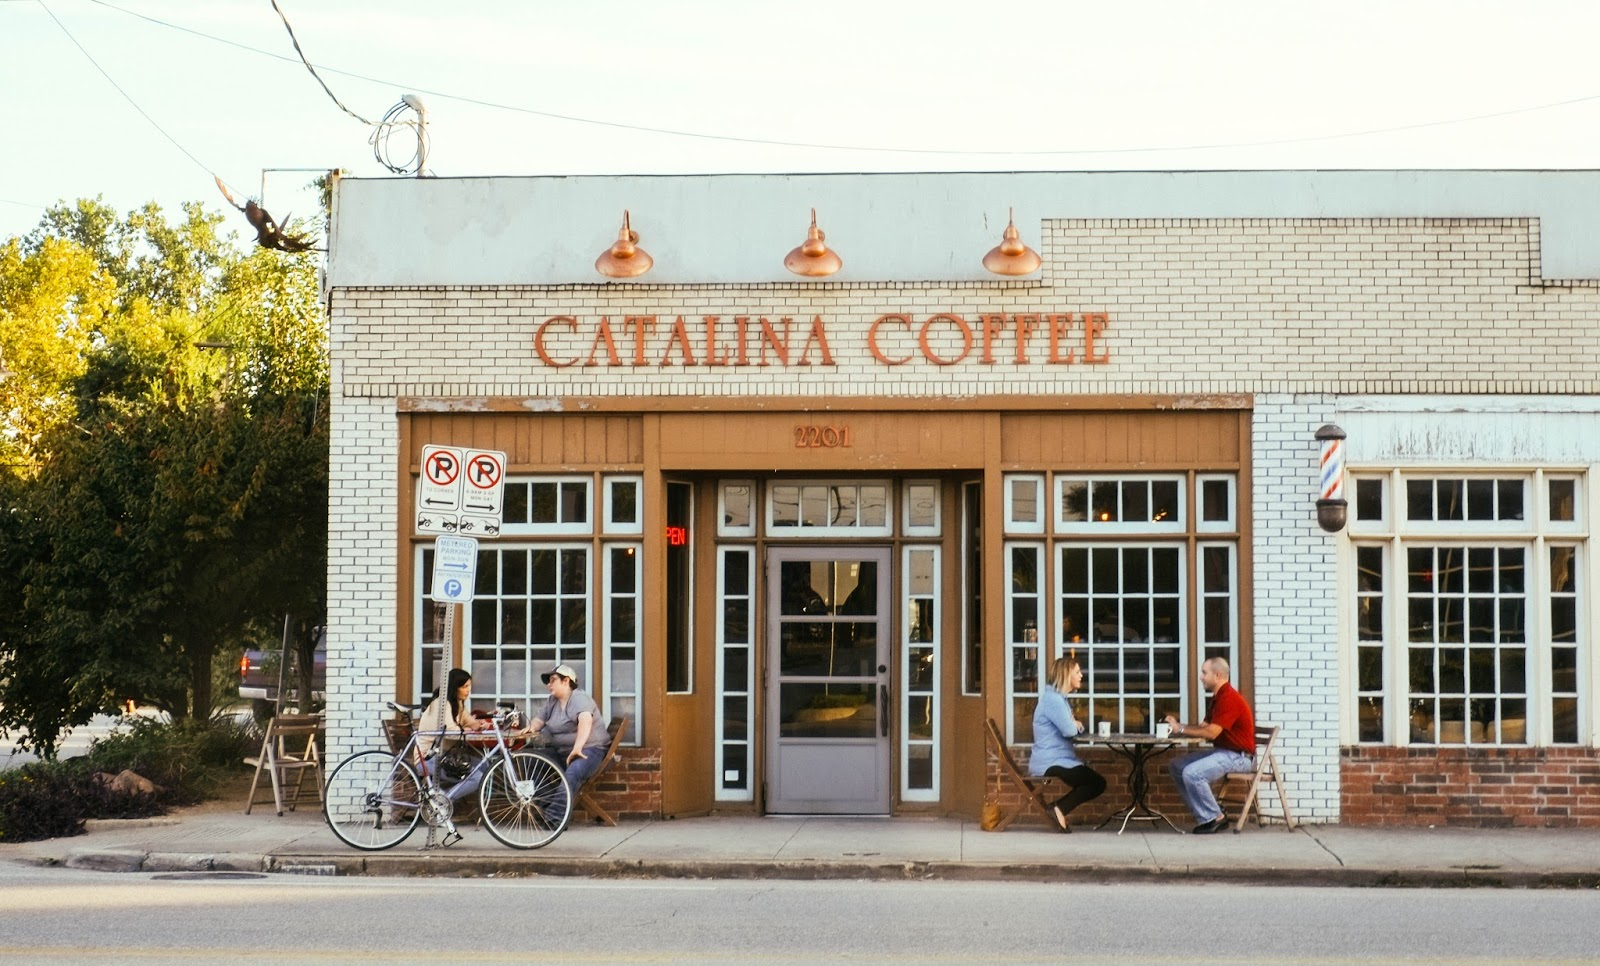 Catalina Coffee Houston, Texas